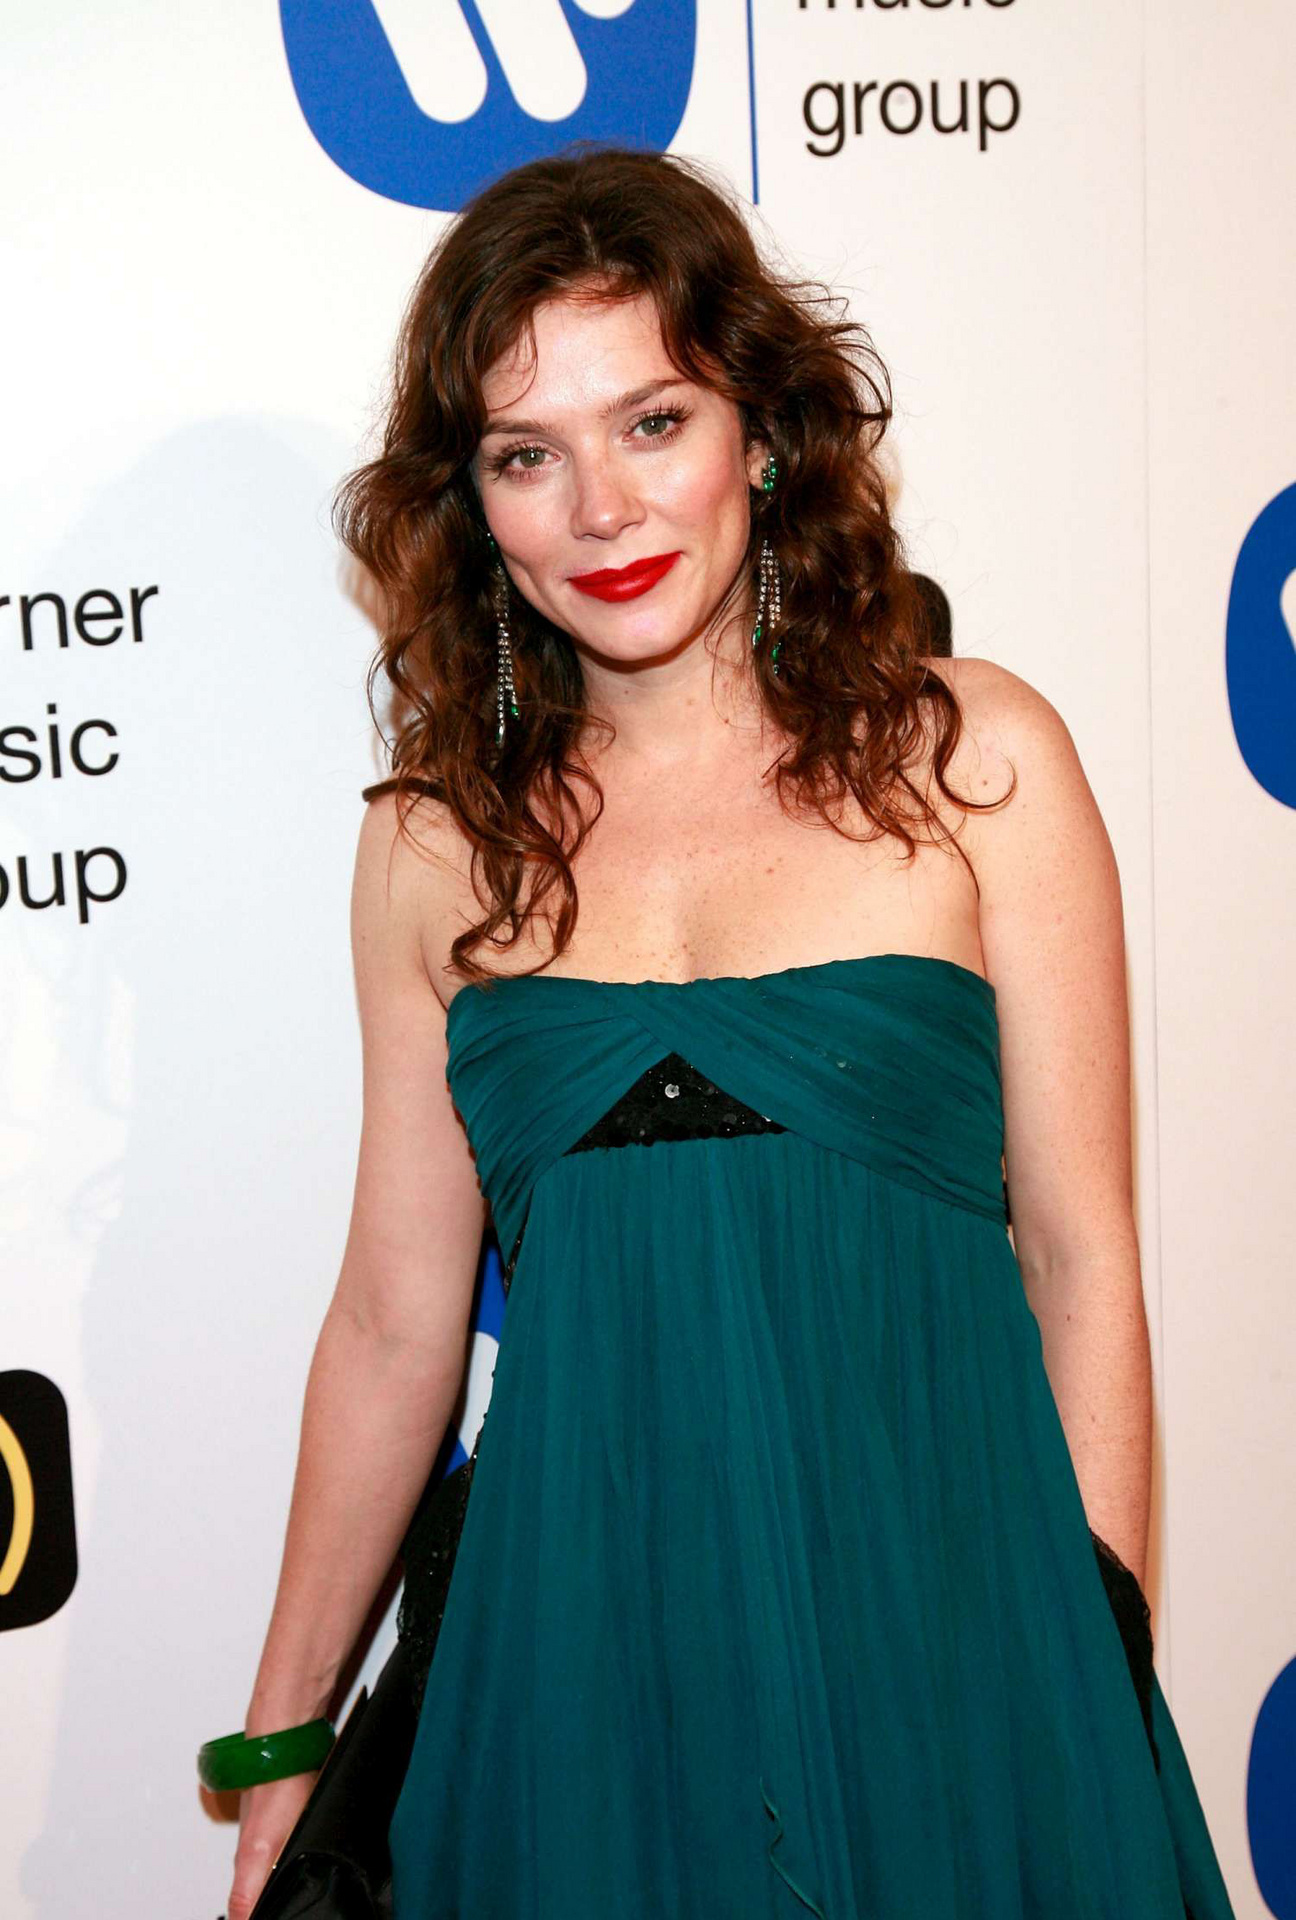 Anna Friel - Images Colection